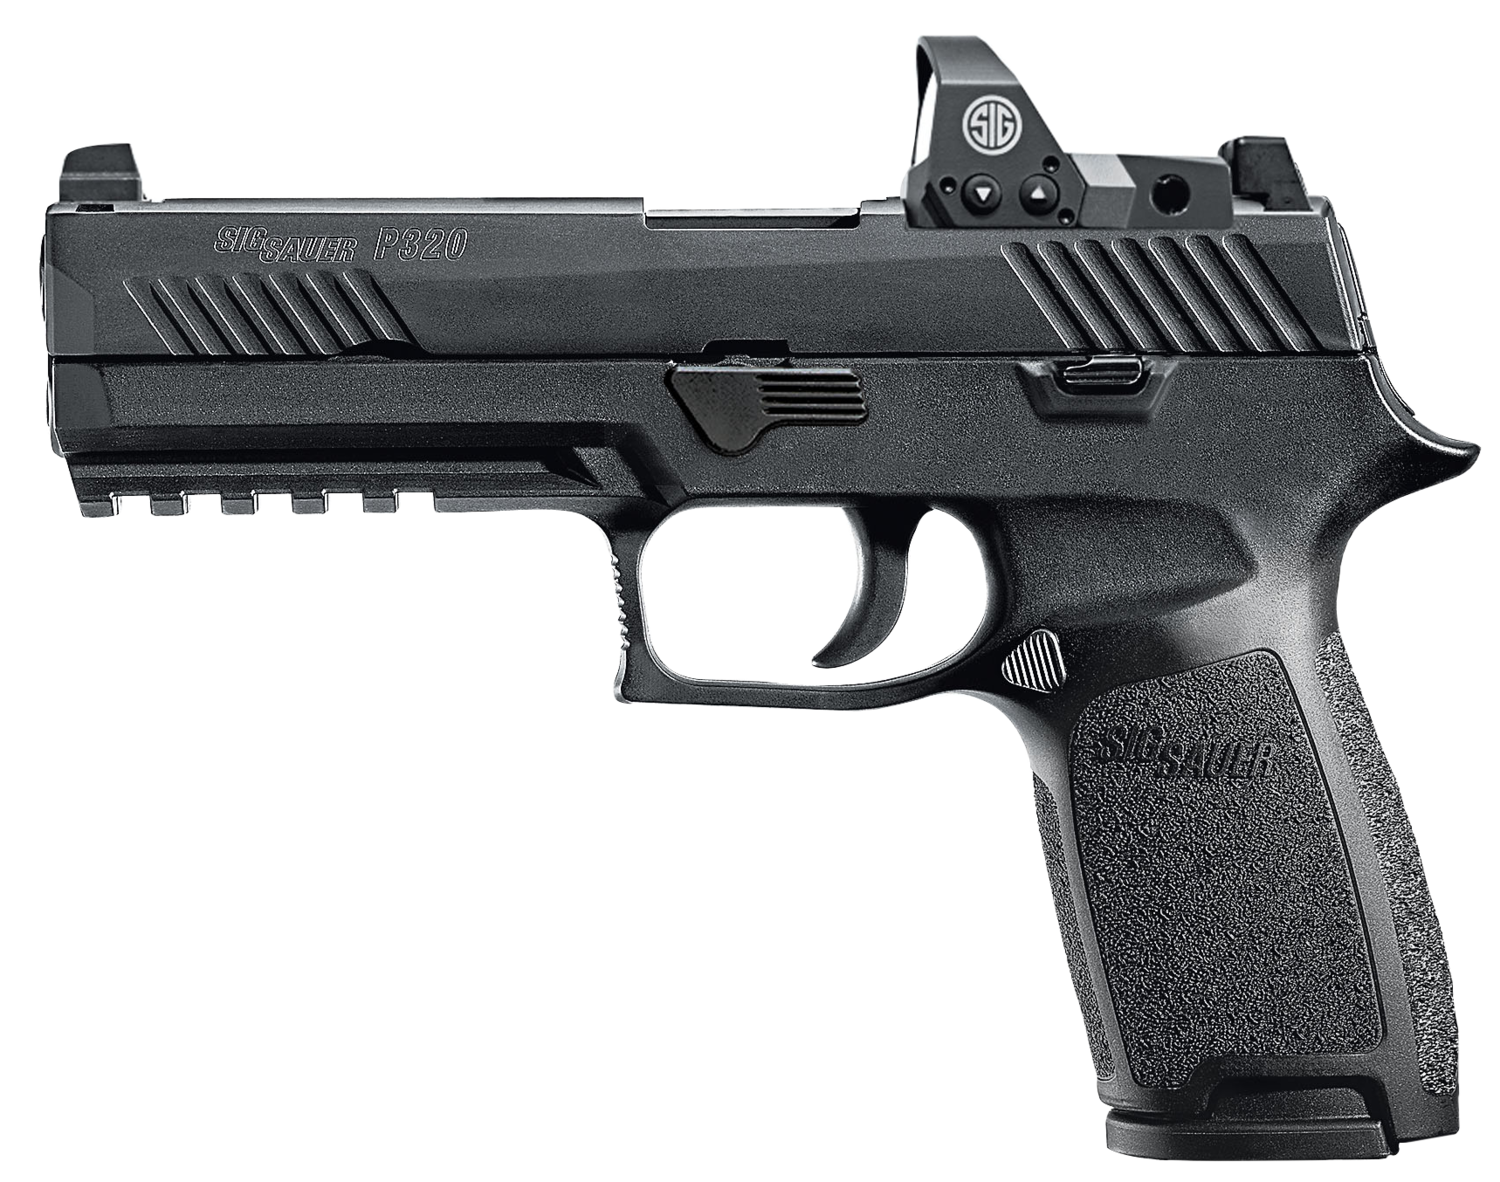 """80% Sig Sauer - P320 Full Size RX Double 9mm Luger 4.7"""" 17+1 - 2 Mags - Romeo1 - Black Polymer Grip/Frame - Black Nitron Stainless Steel"""